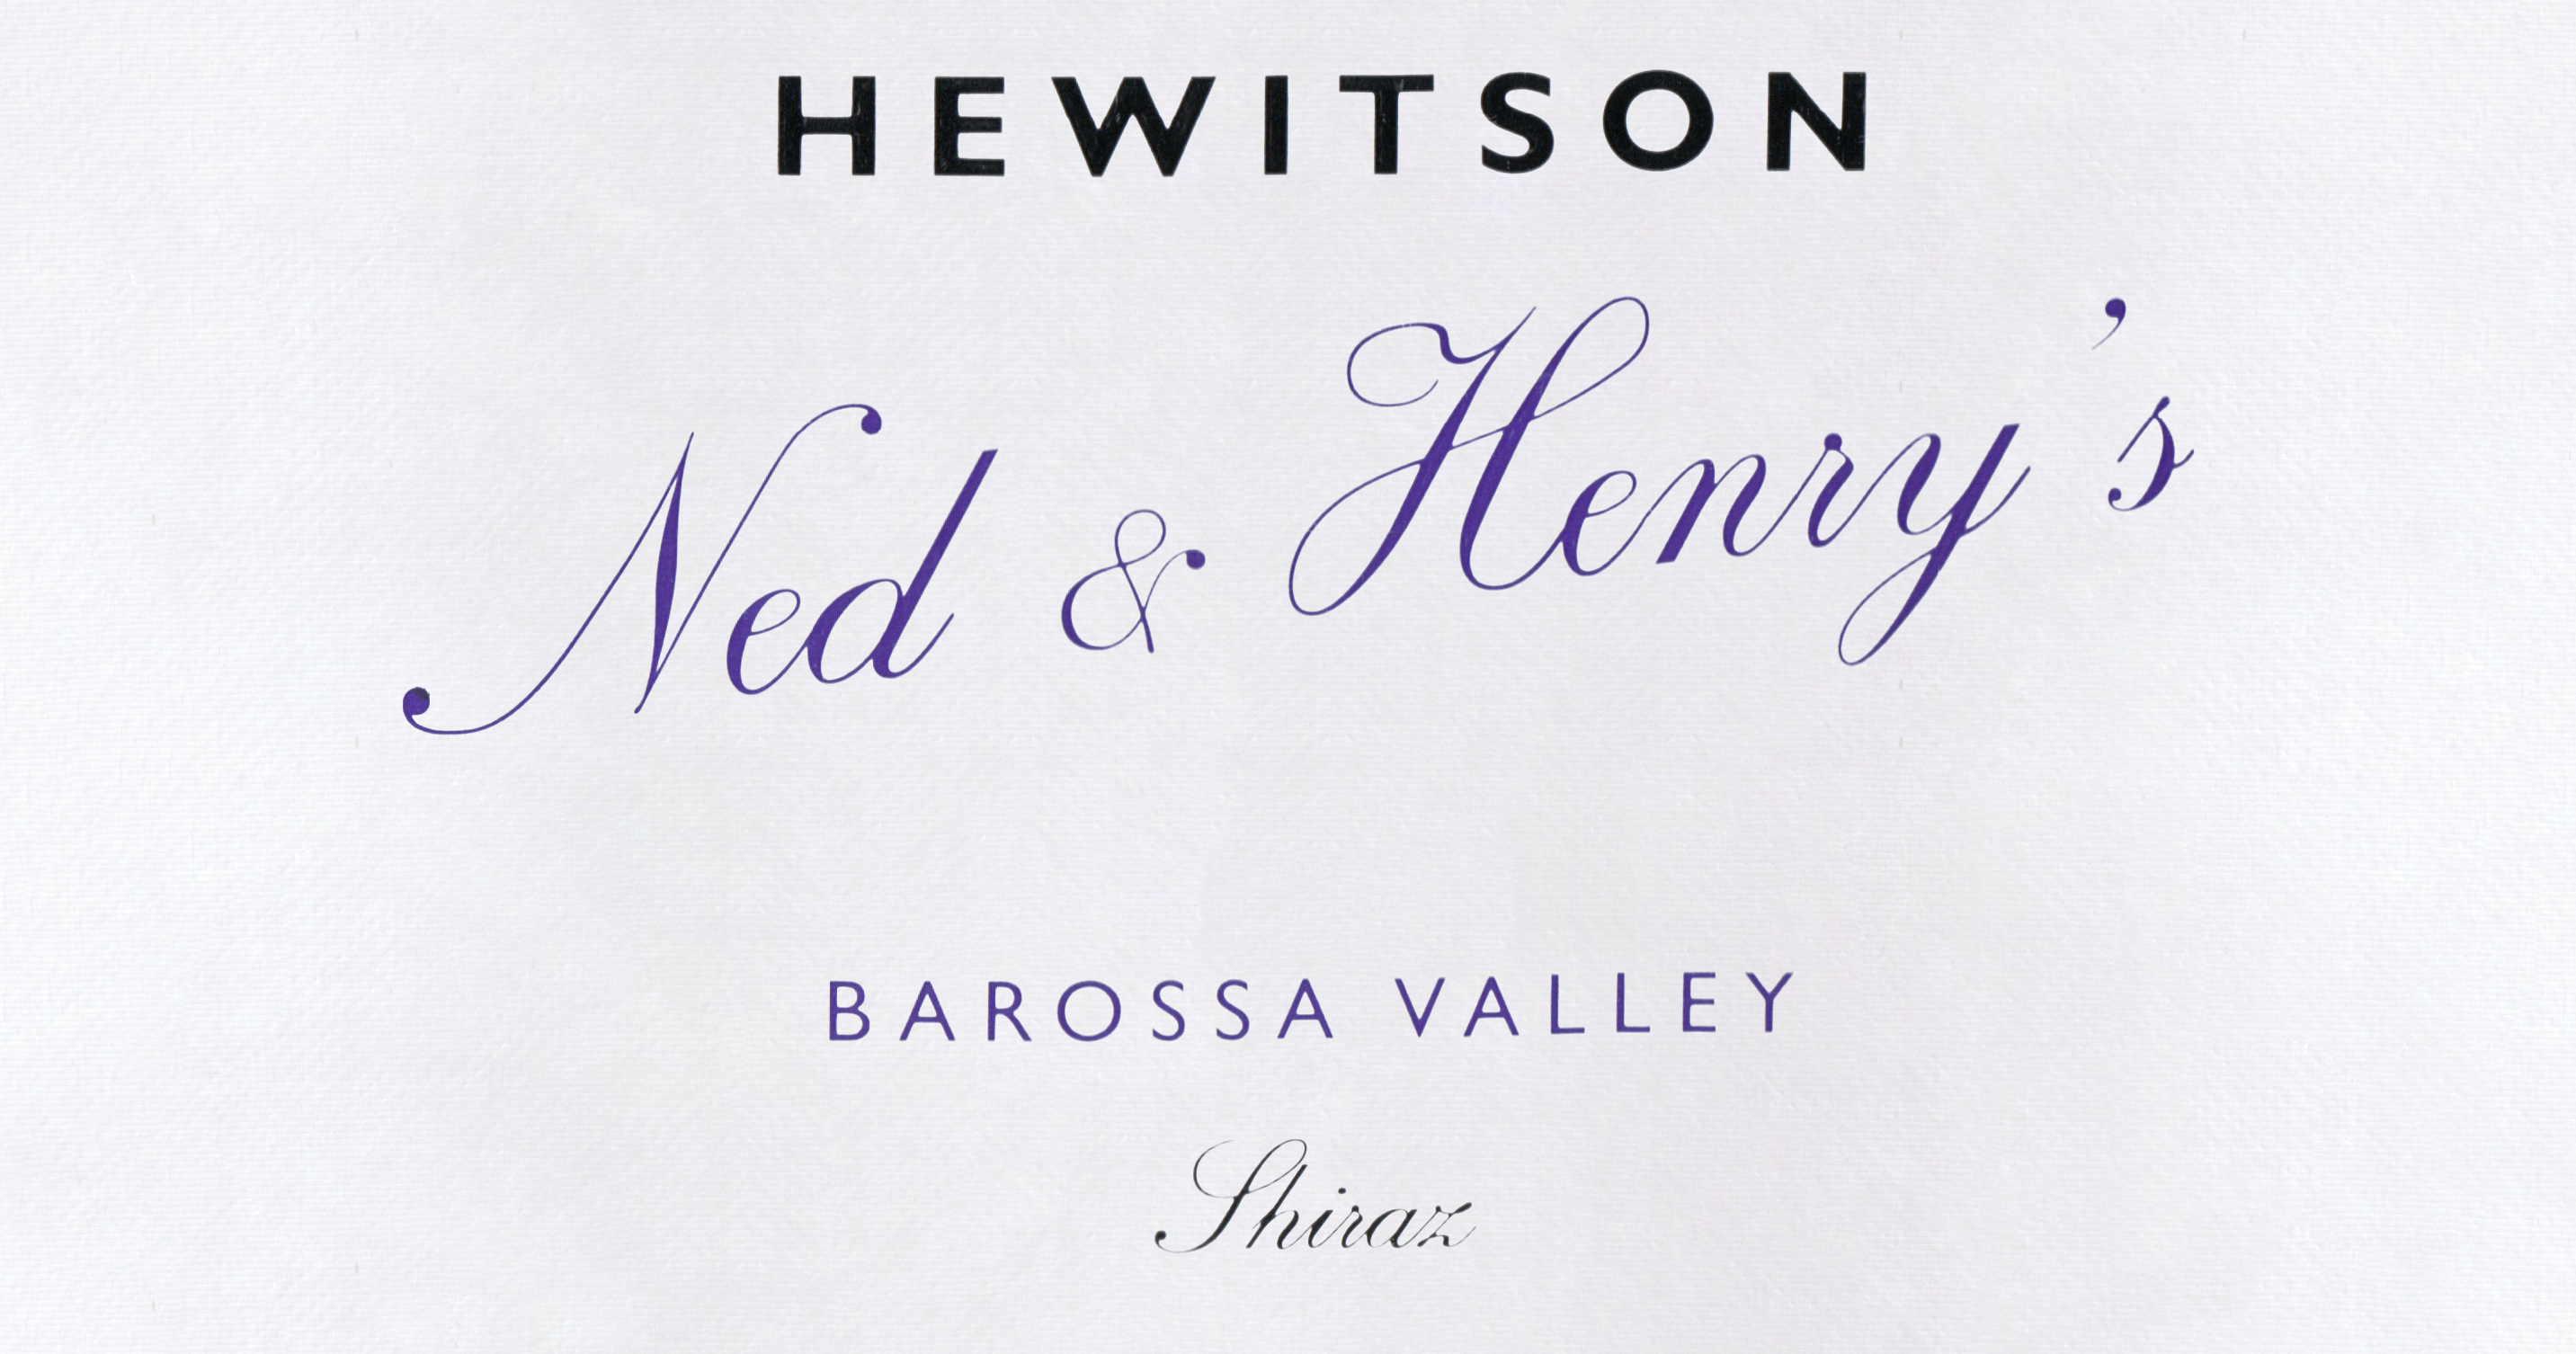 Hewitson Ned & Henry